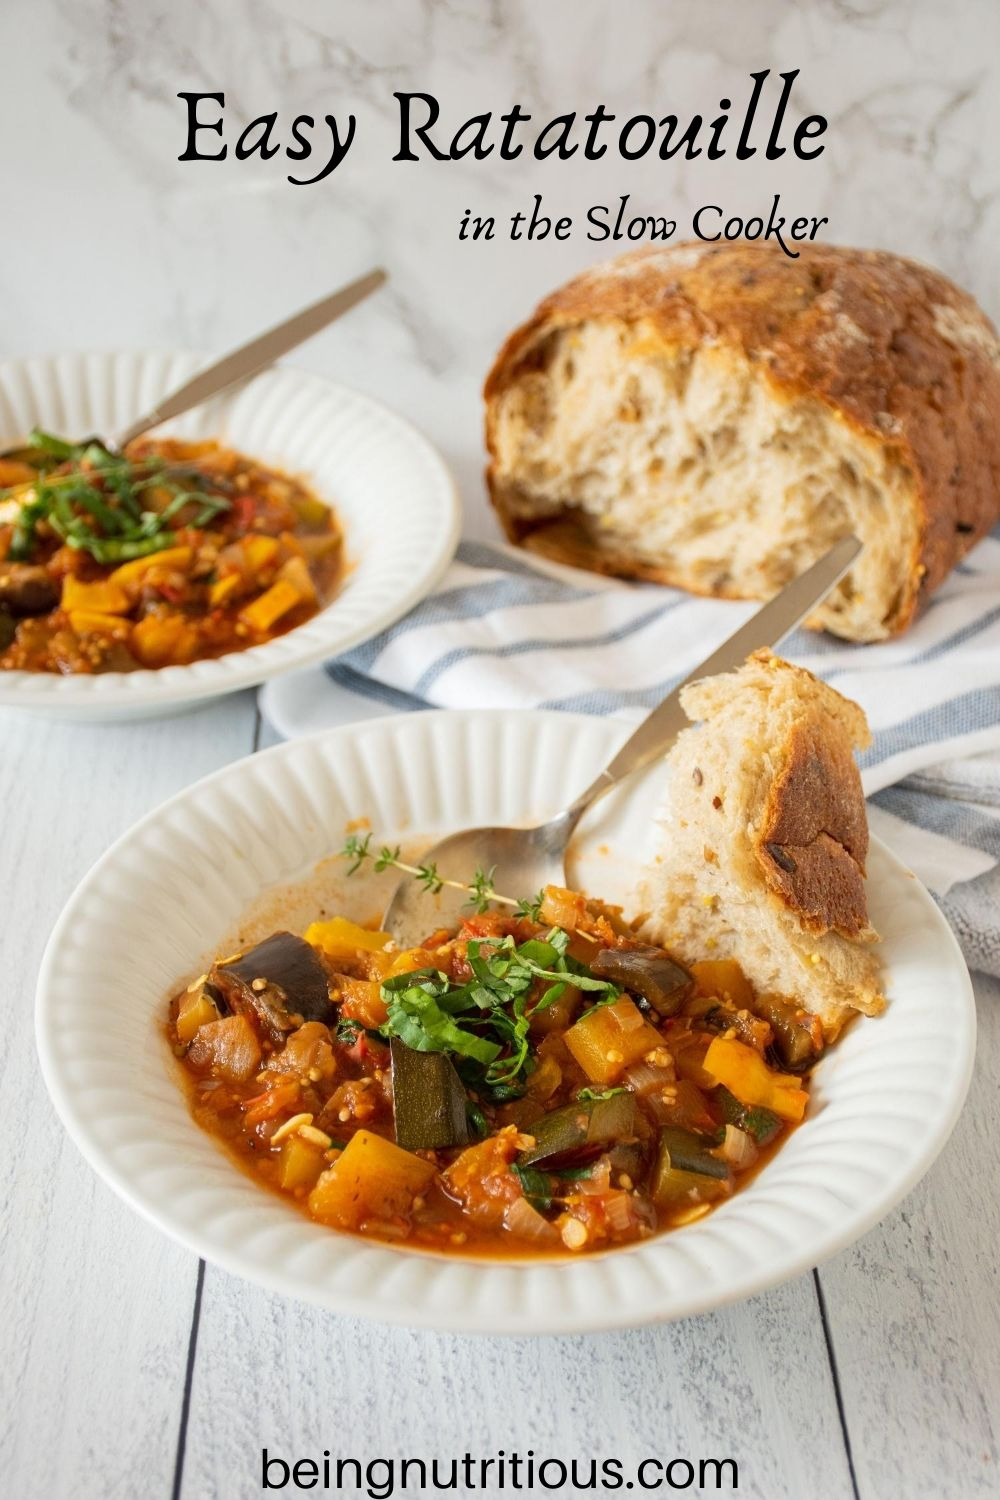 Bowl of ratatouille with rustic piece of bread. Another bowl and loaf of bread visible in background. Text overlay: Easy Ratatouille in the Slow Cooker.